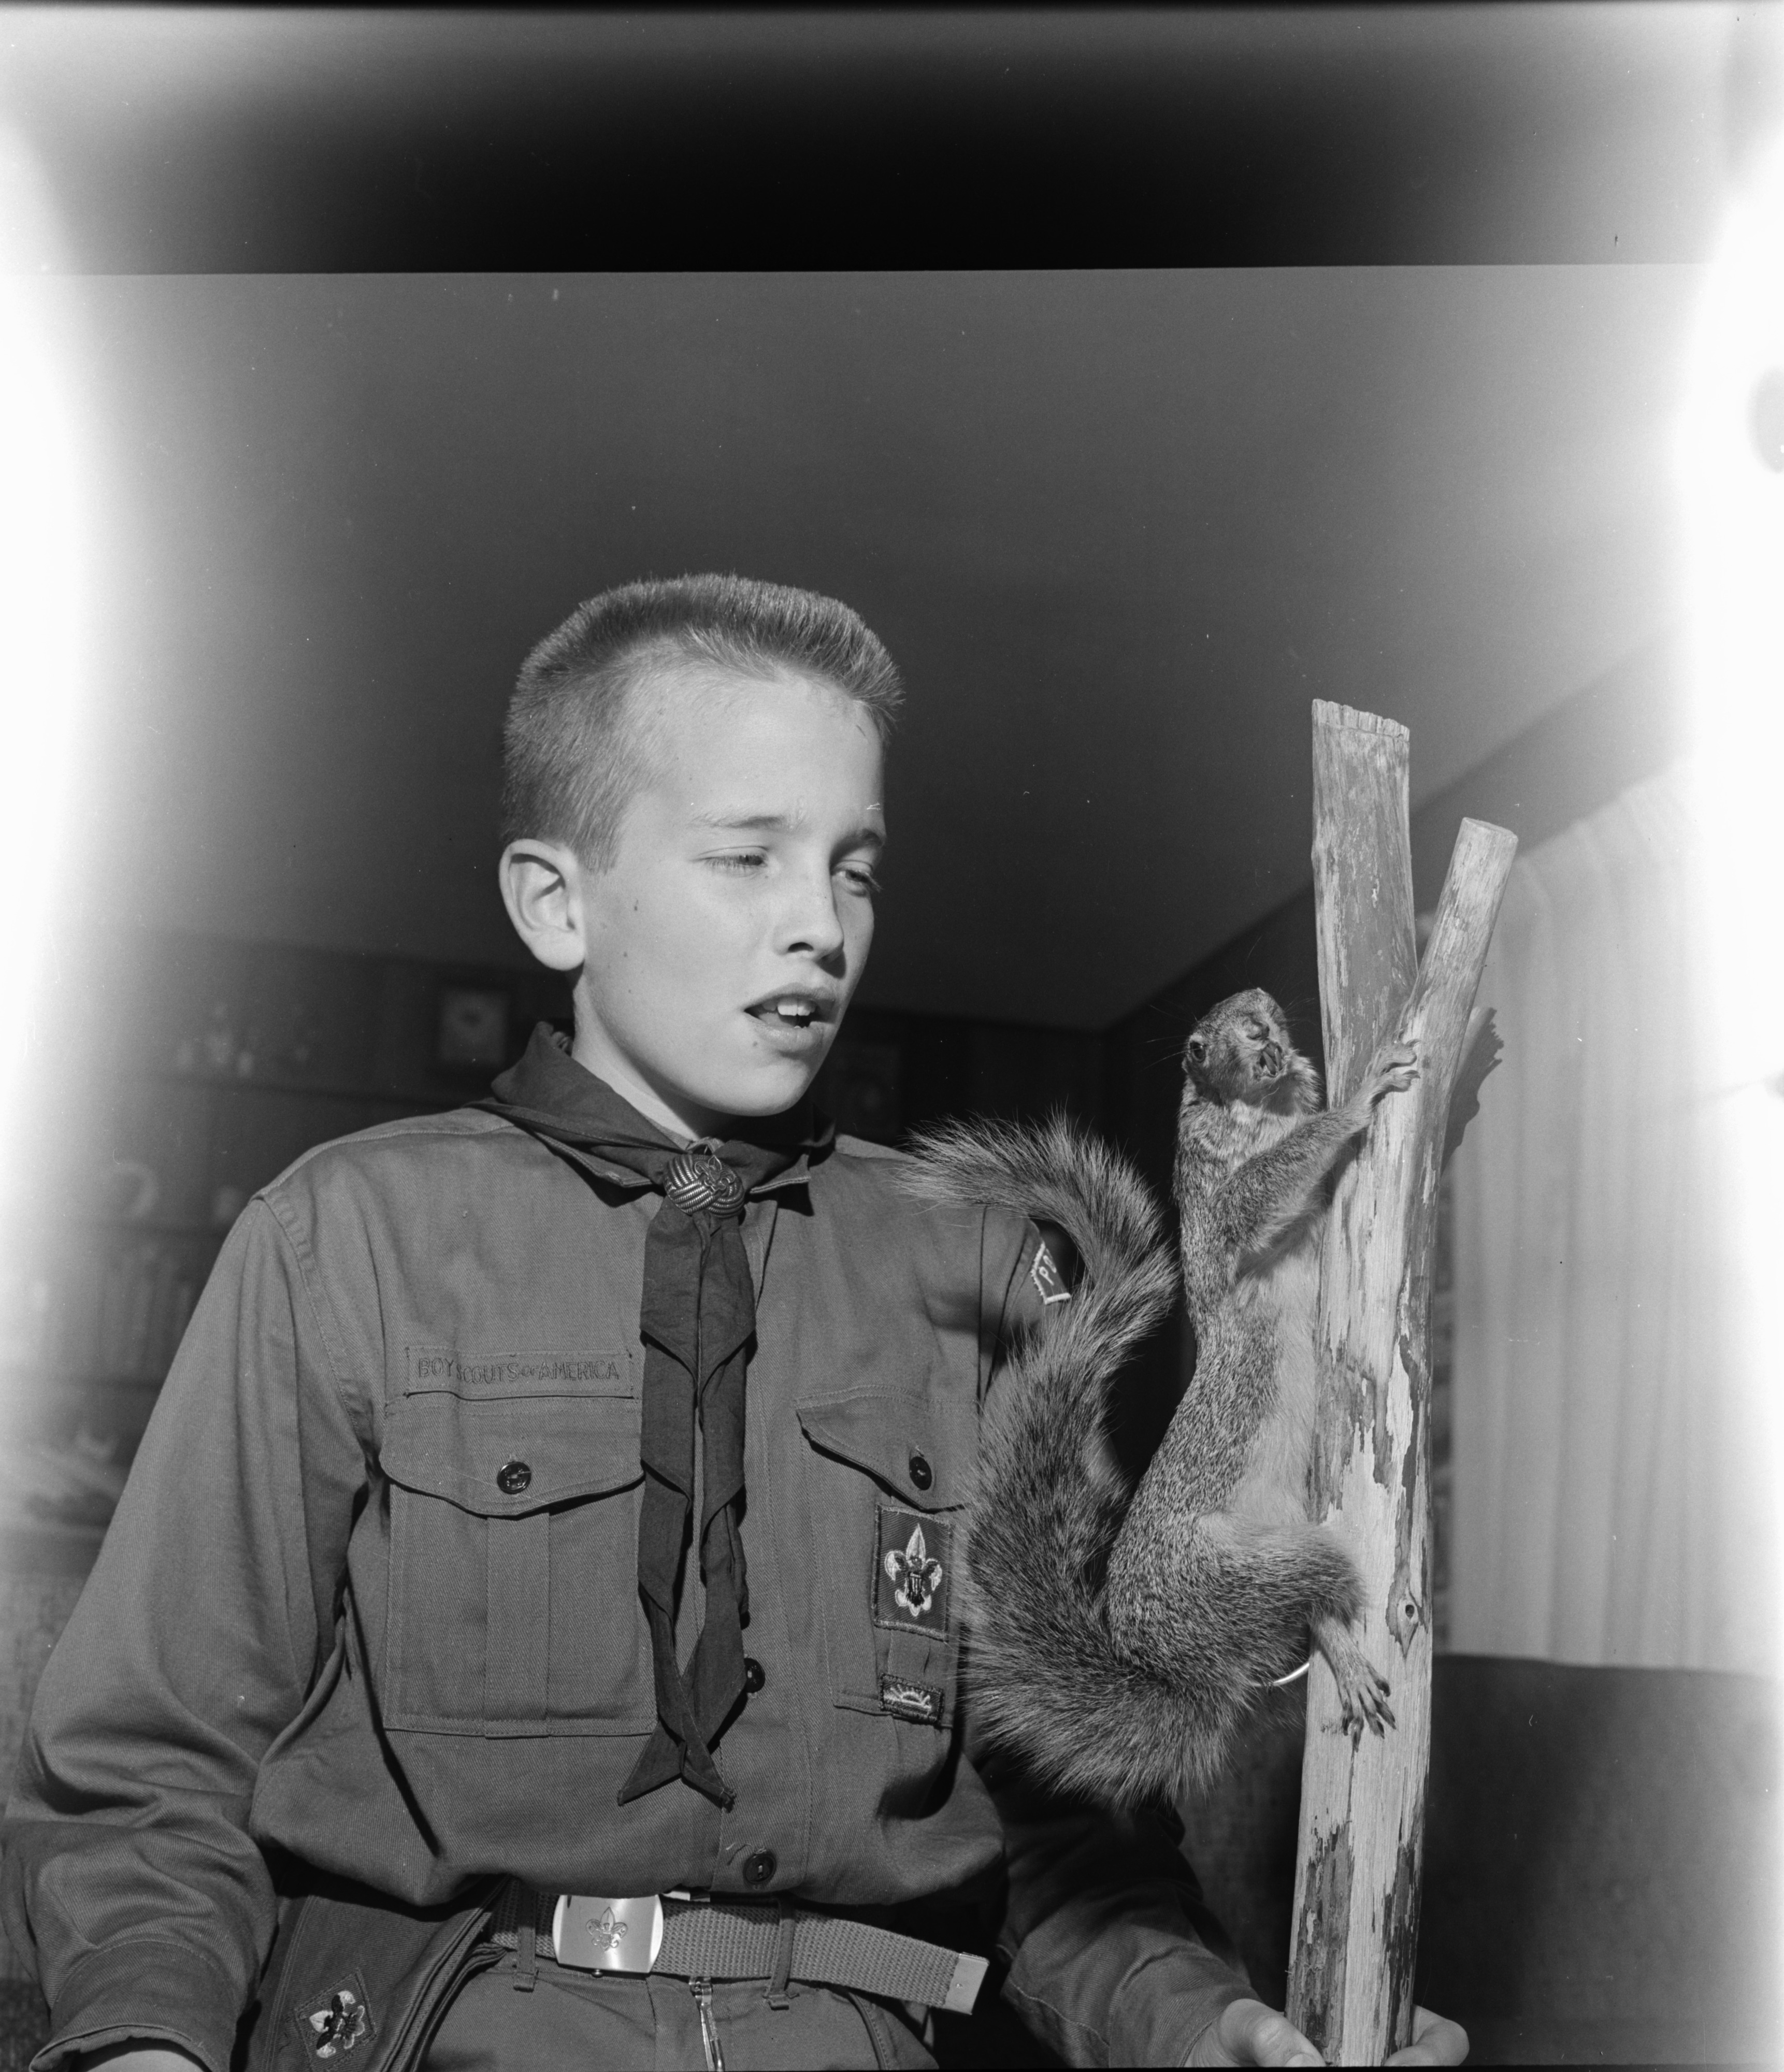 Doug Carpenter Displays Taxidermied Squirrel, February 1963 image